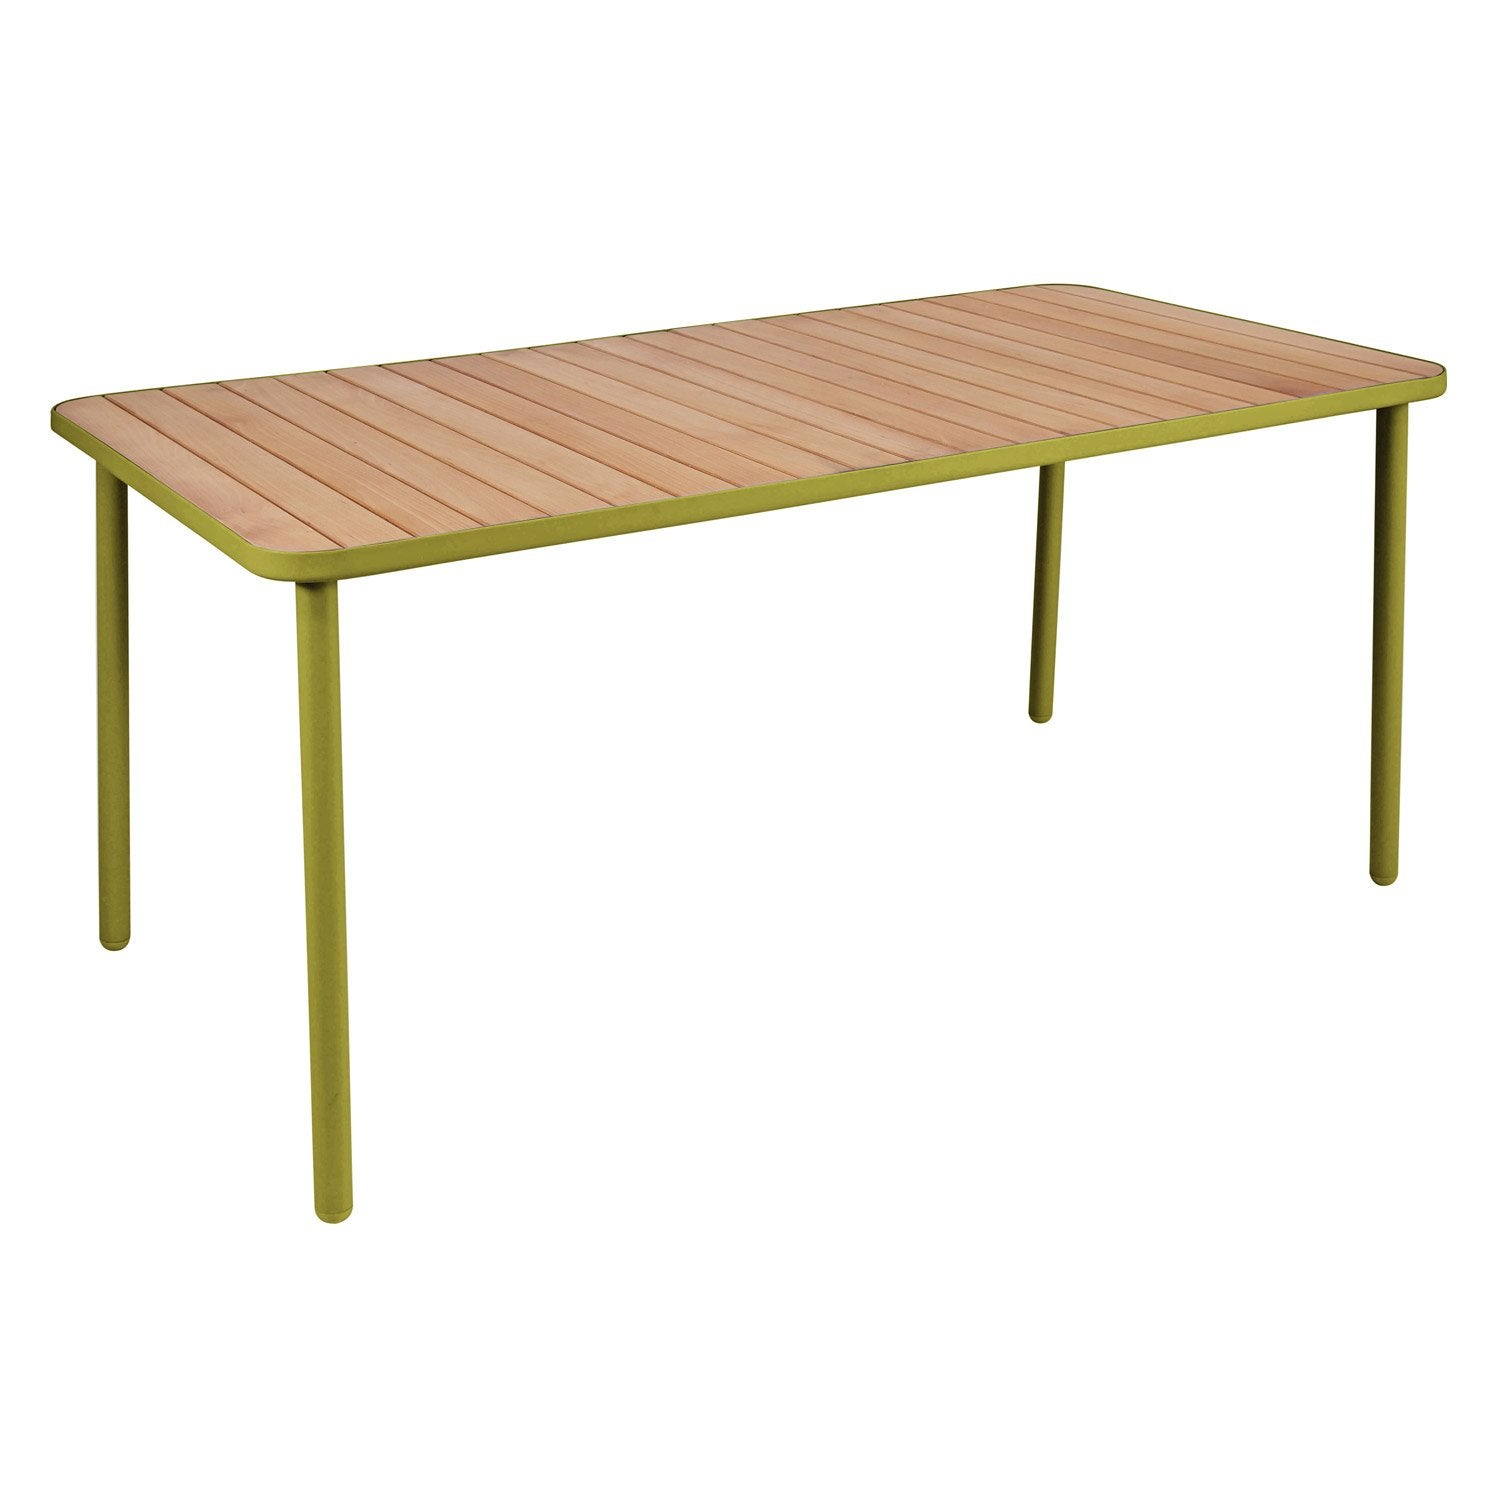 Table de jardin hata rectangulaire vert 8 personnes for Table de nuit leroy merlin